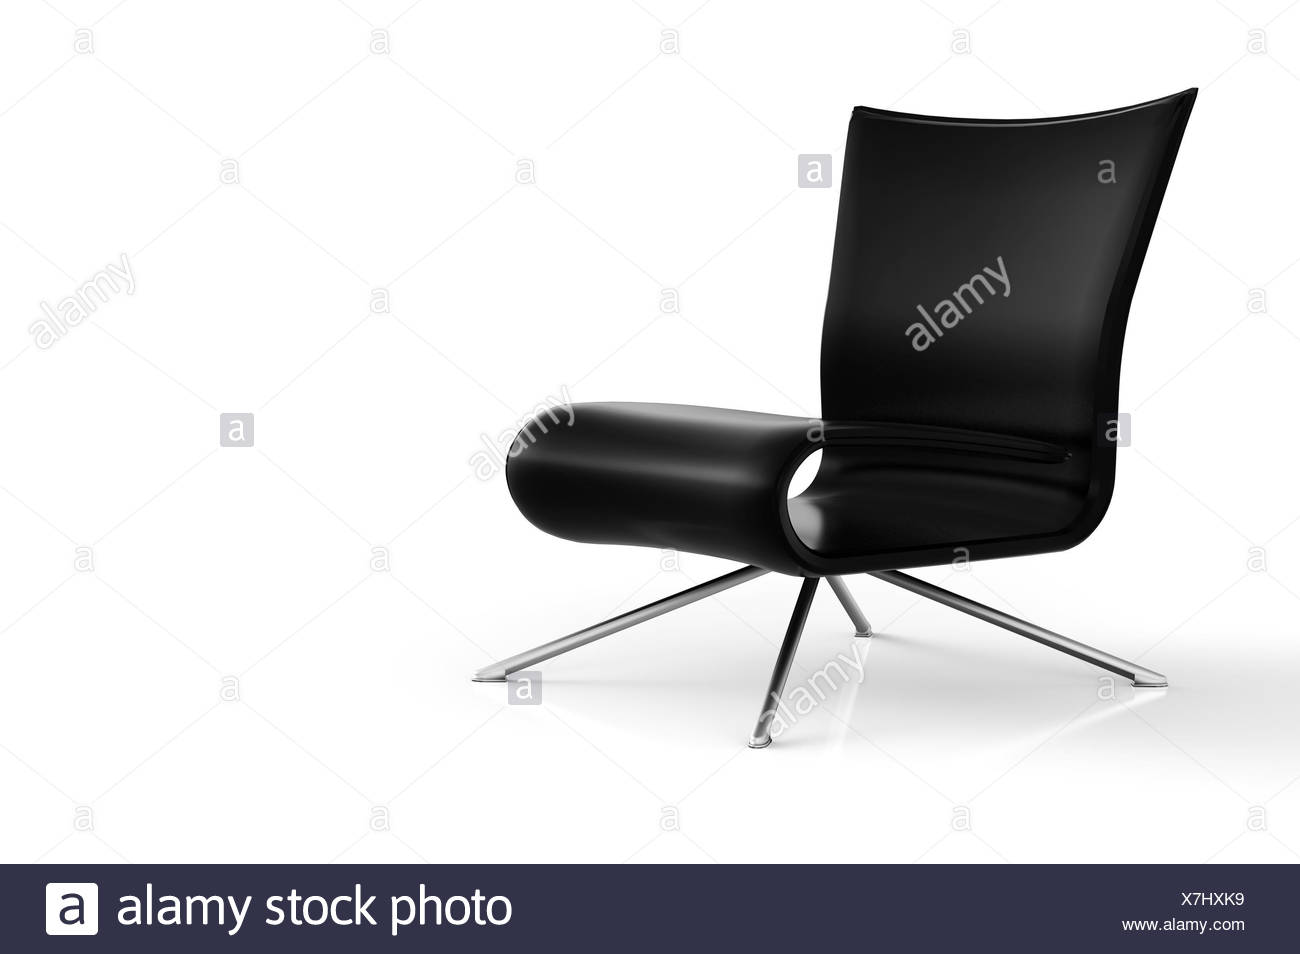 GroBartig Sit And Relax   Schwarz   Stock Image